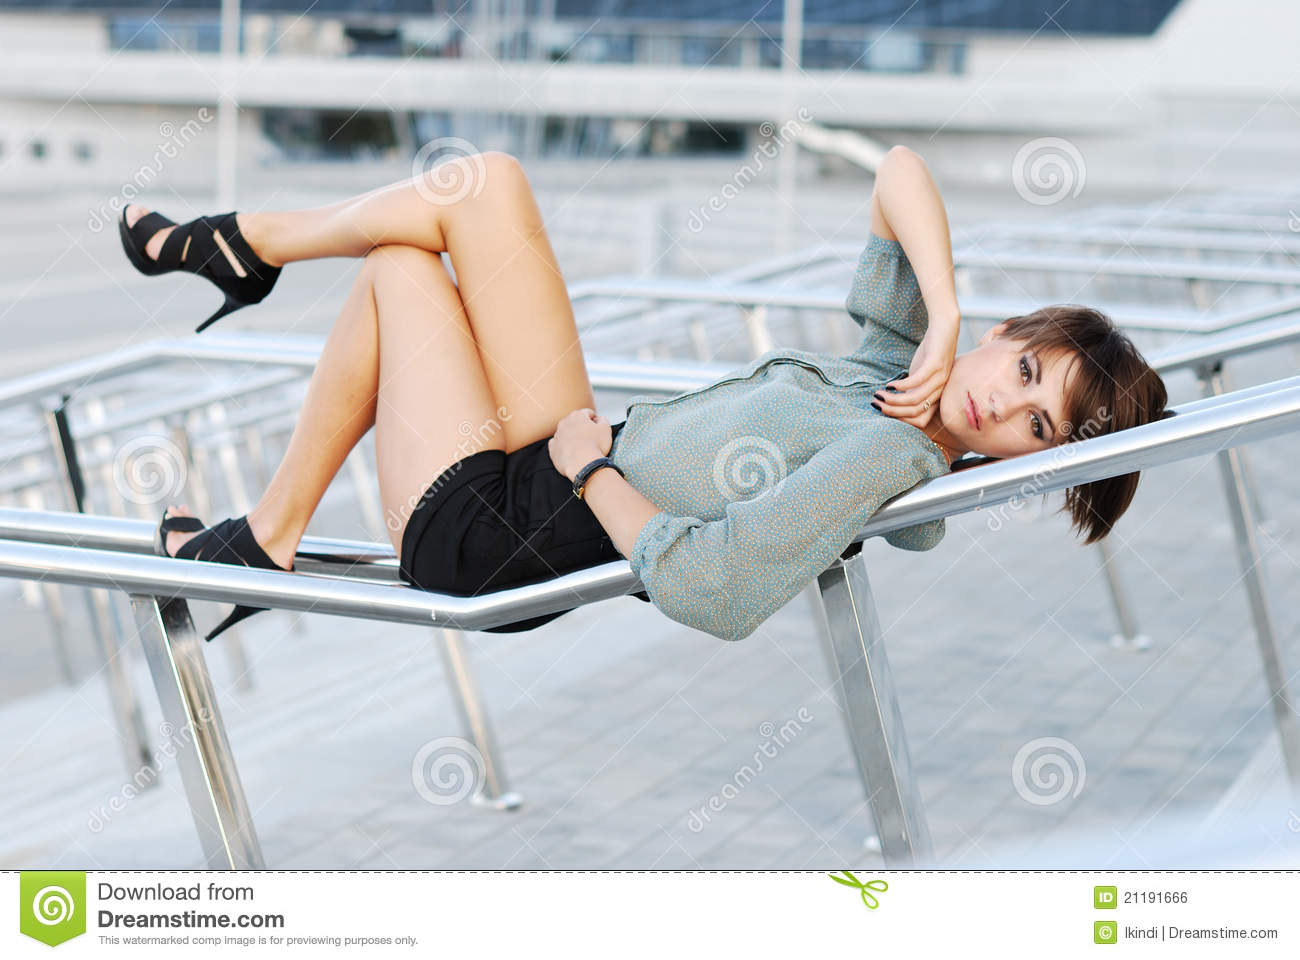 Woman lays on a metal handrail